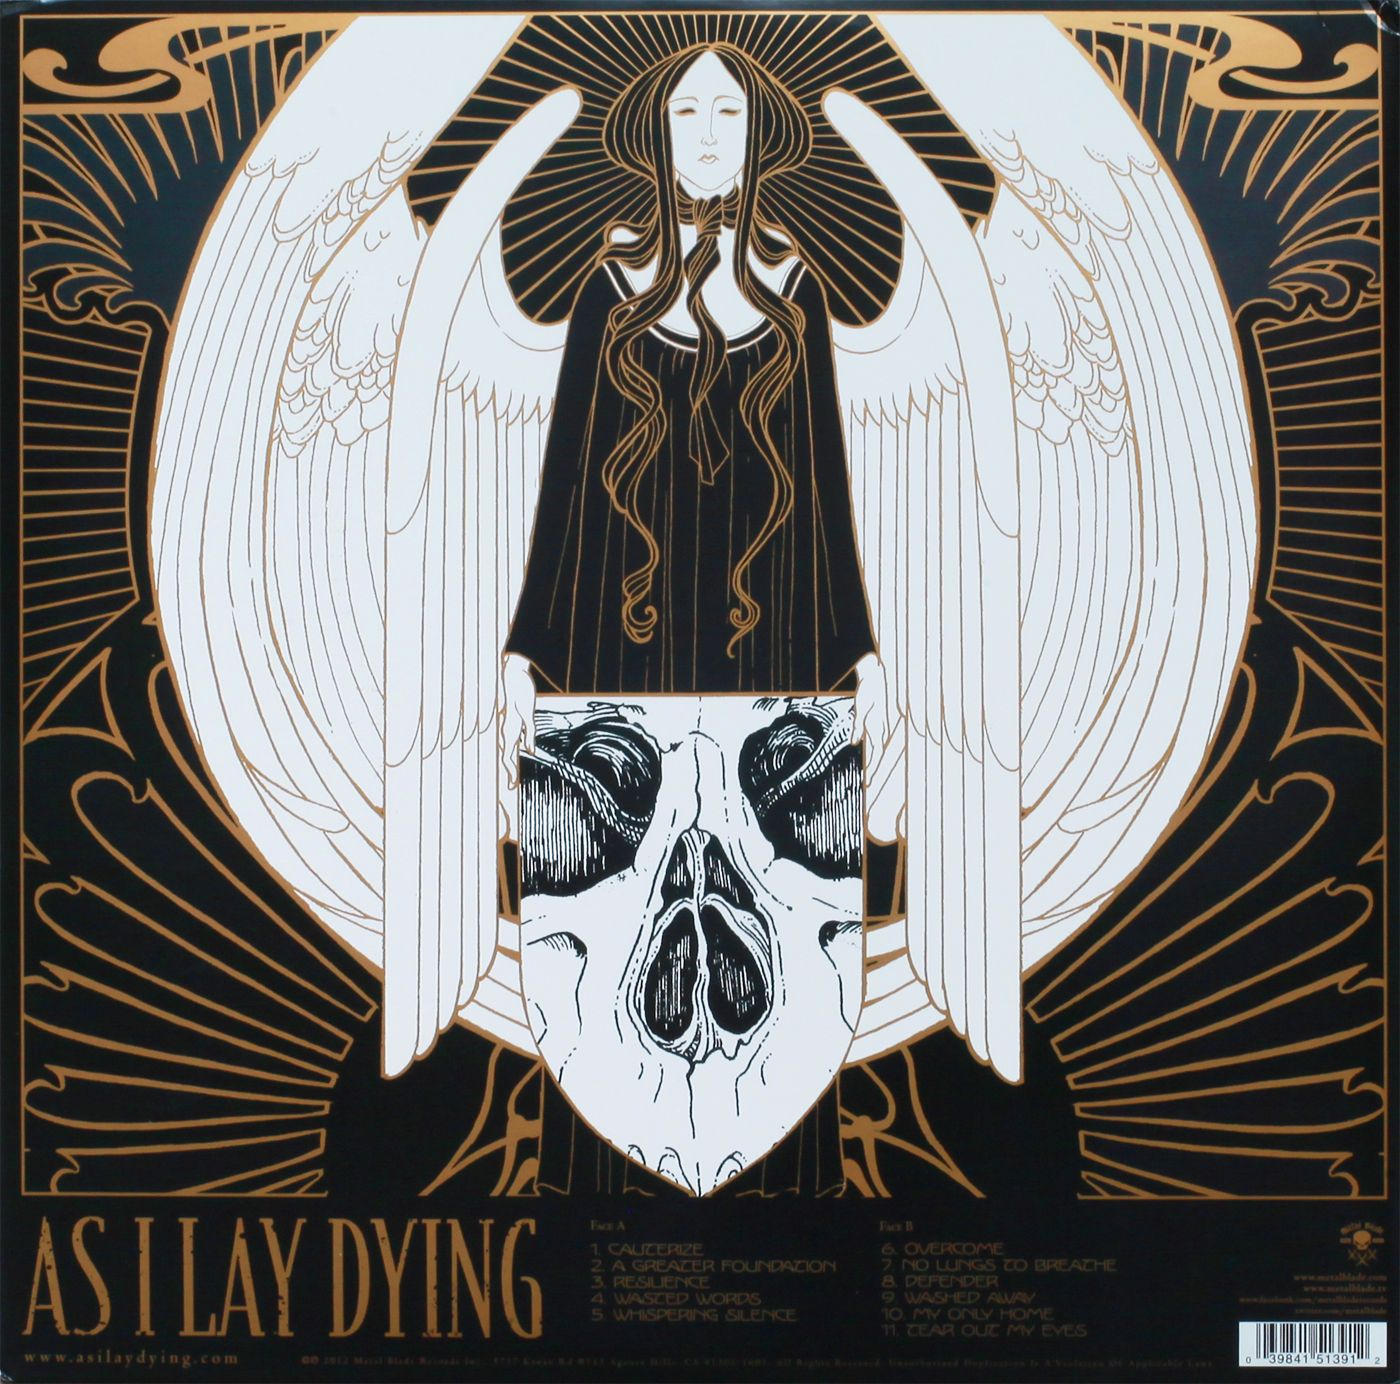 Turbid As I Lay Dying Awakened